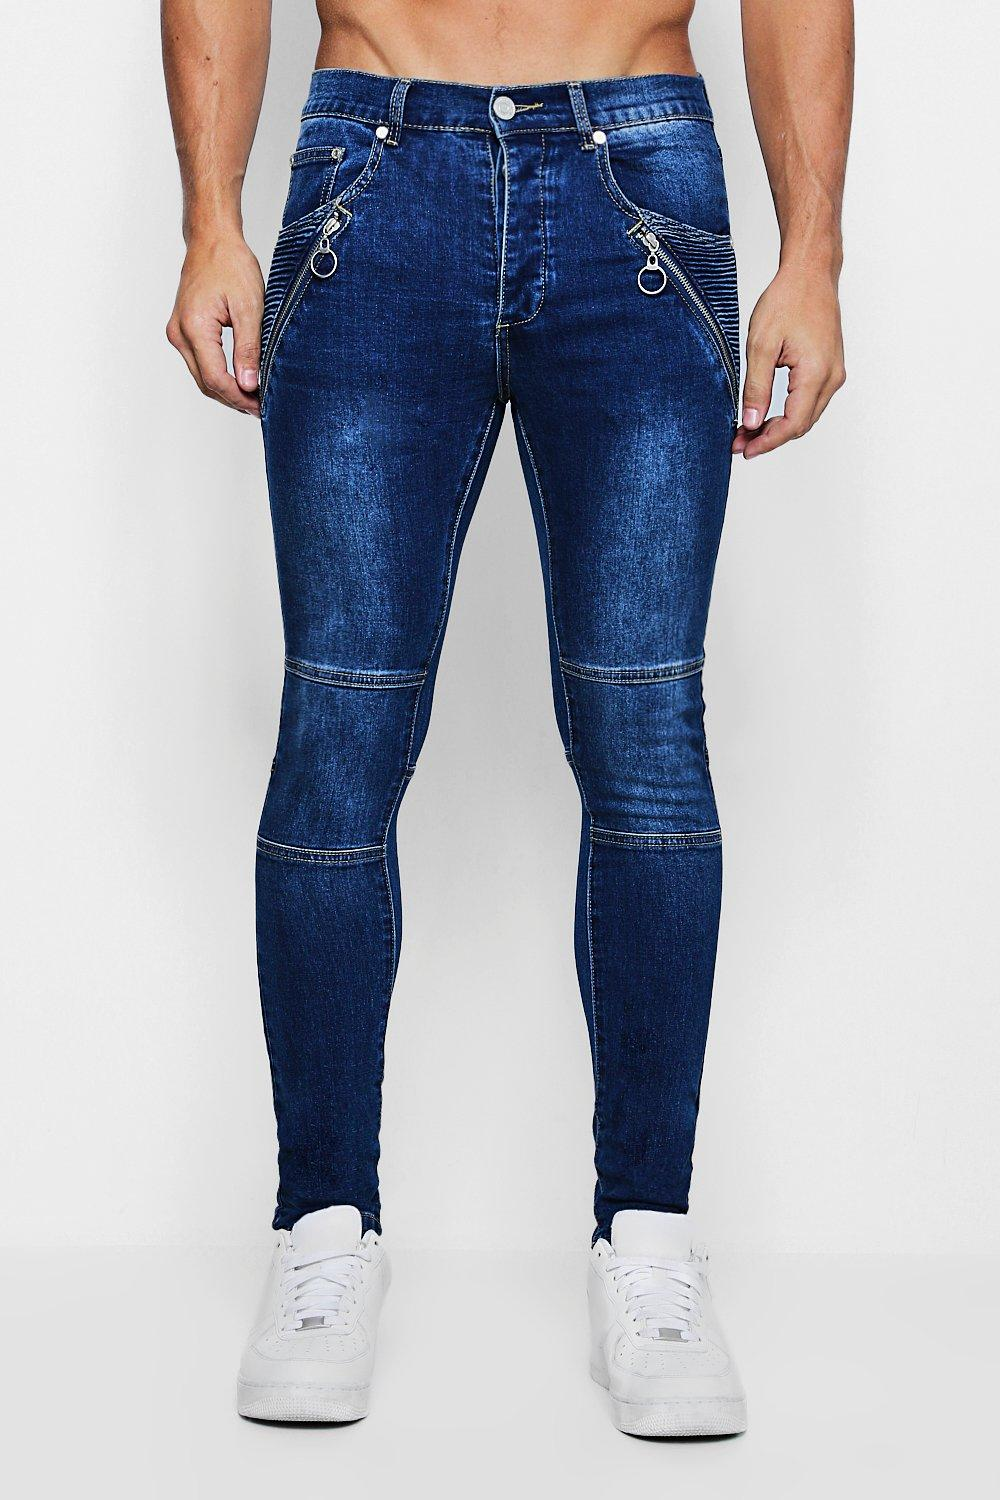 Super Skinny Biker Jeans with Hardware